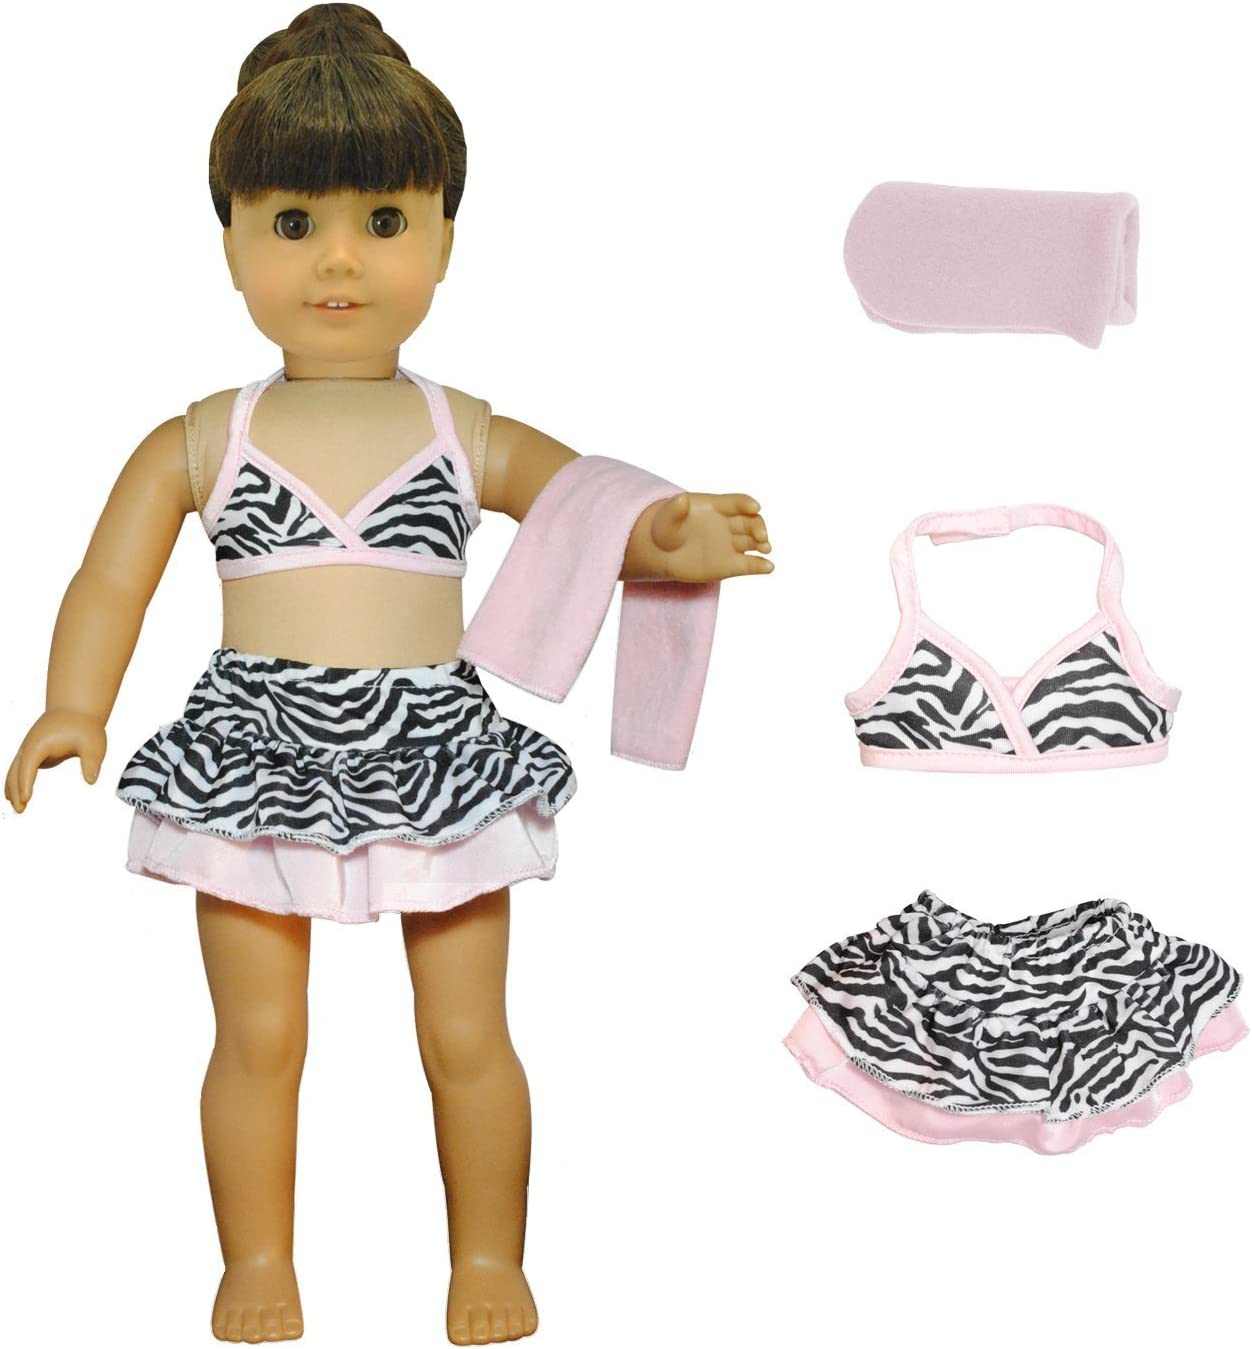 Doll Clothes Swimsuit Pool Goggles Pink Butterfly Closet Fits American Girl 18/""